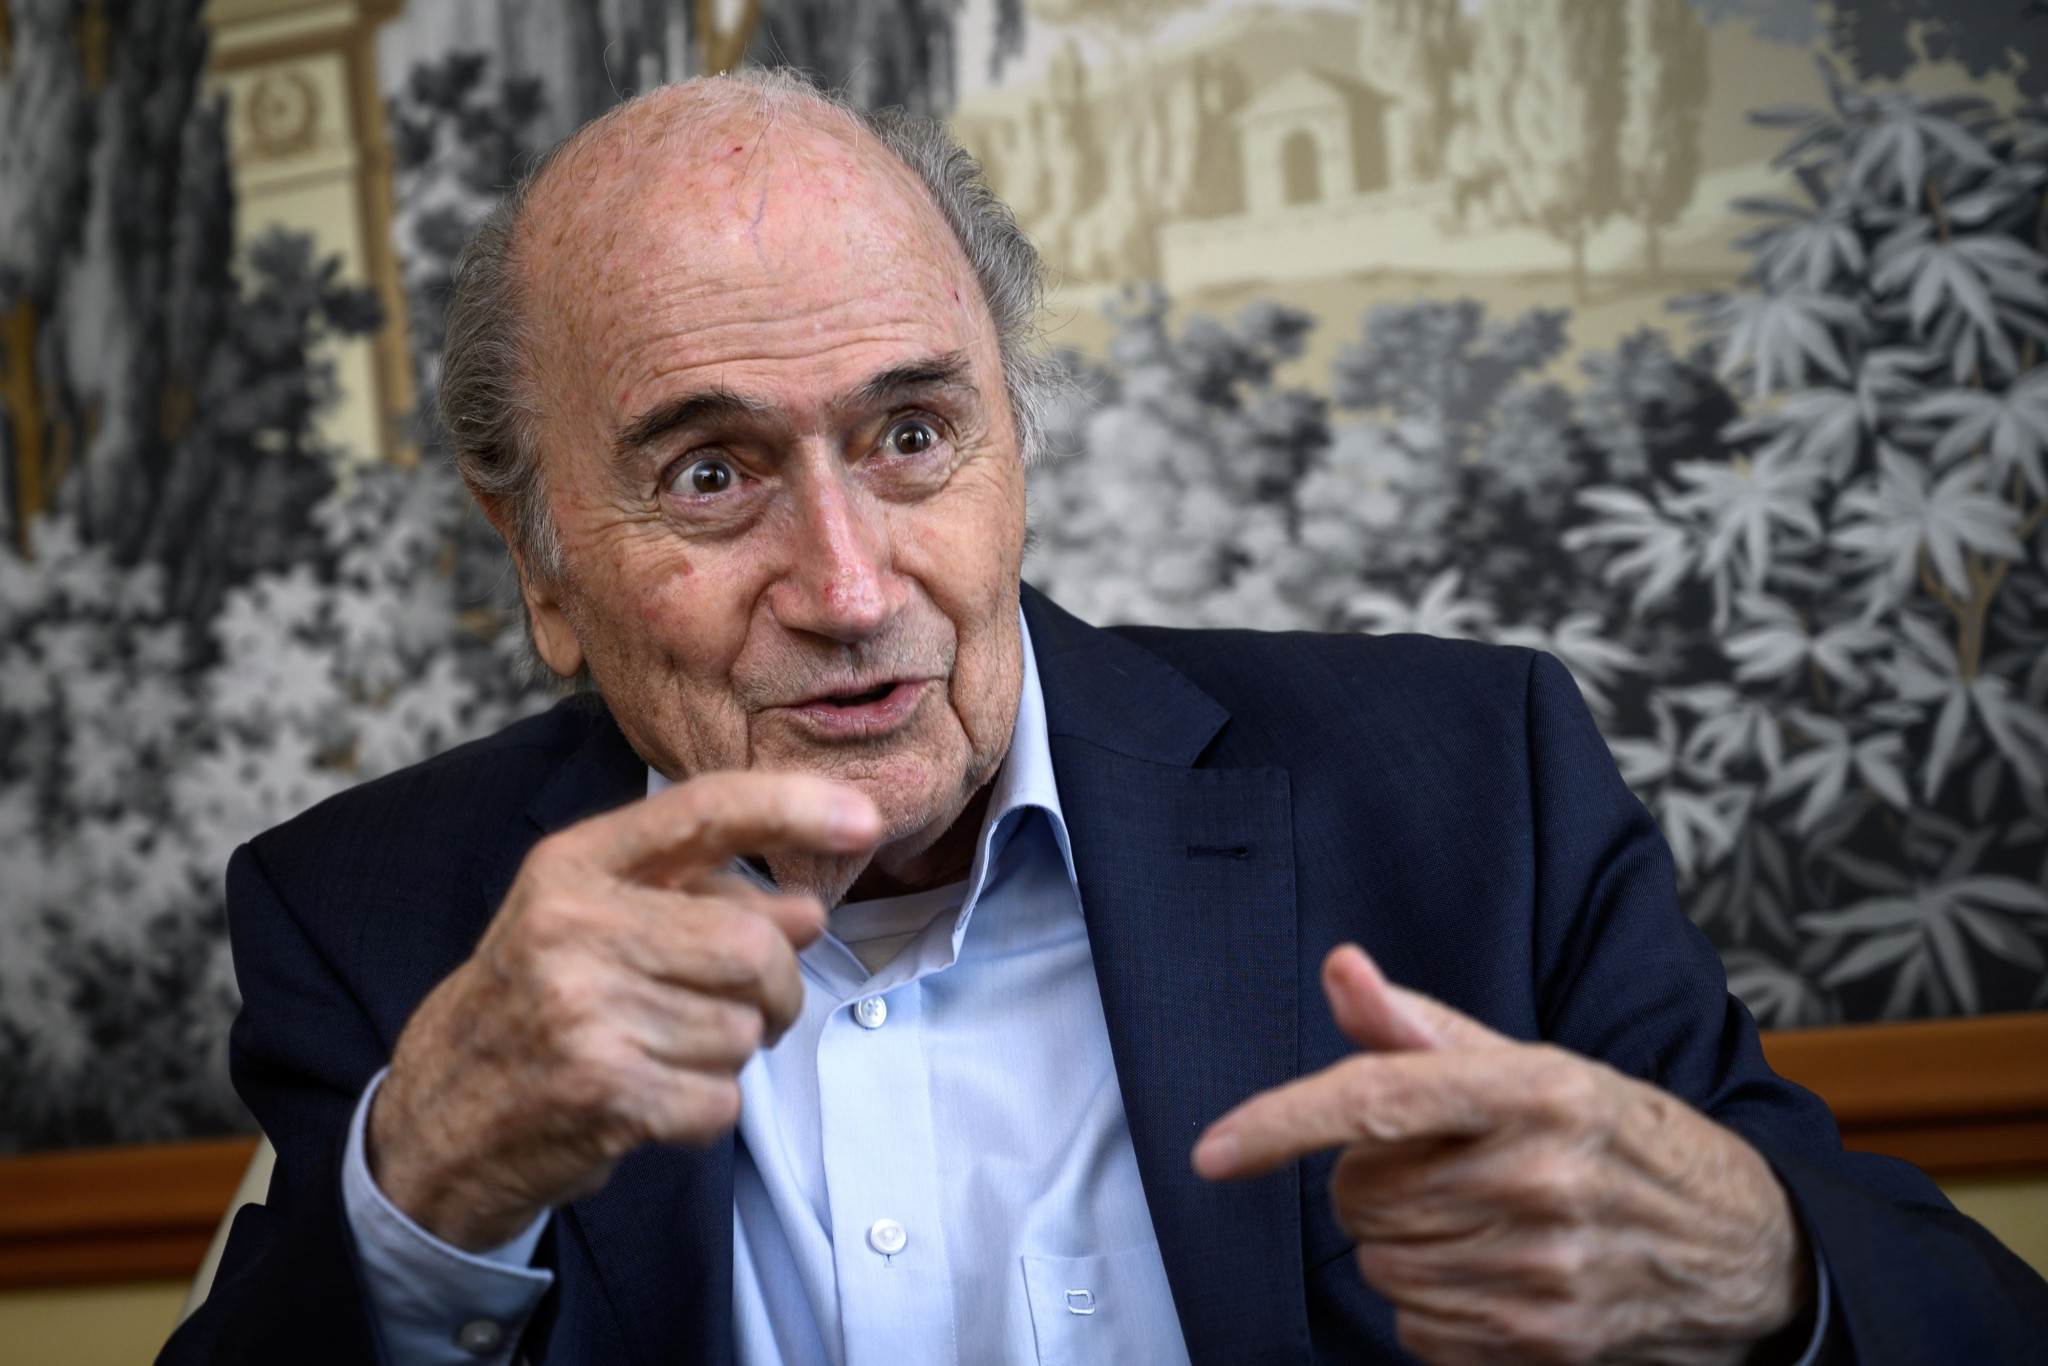 FIFA has filed a criminal complaint against Sepp Blatter who was head of the organisation for 17 years before being banned in 2015 ©Getty Images